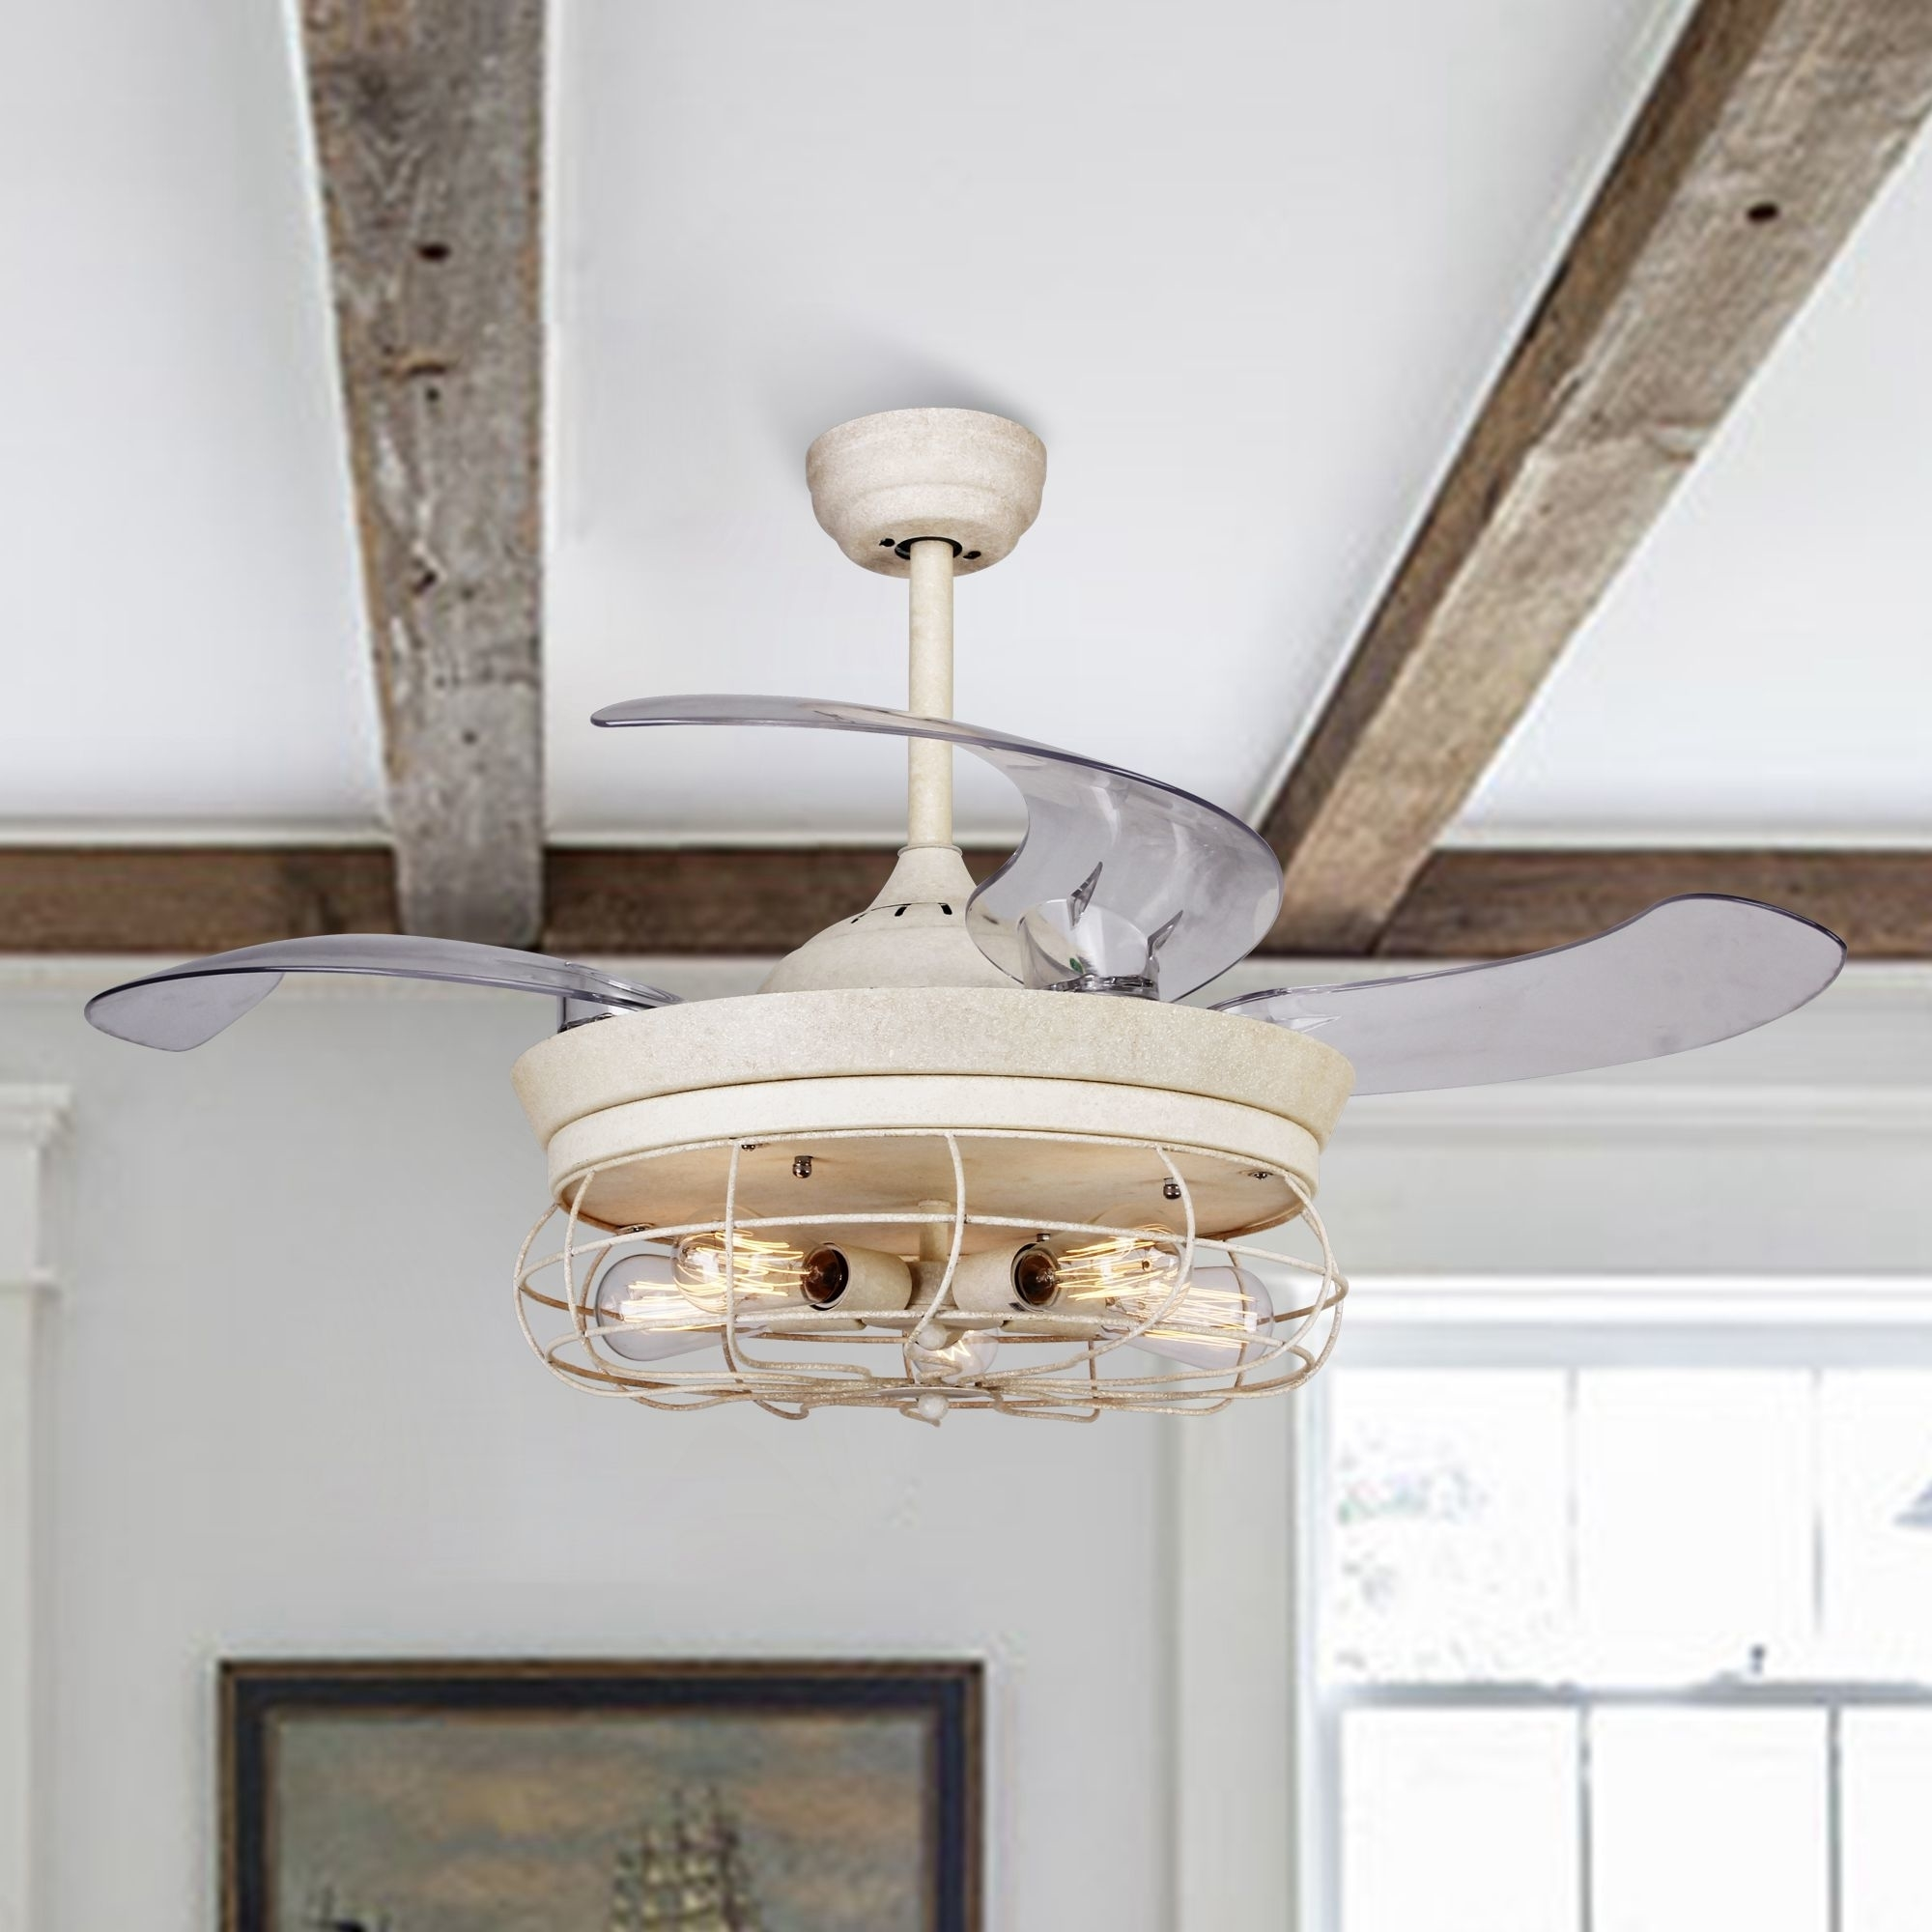 Rustic Ceiling Fan With Retractable Blades Light And Remote Antique White Ceiling Fans Aliexpress